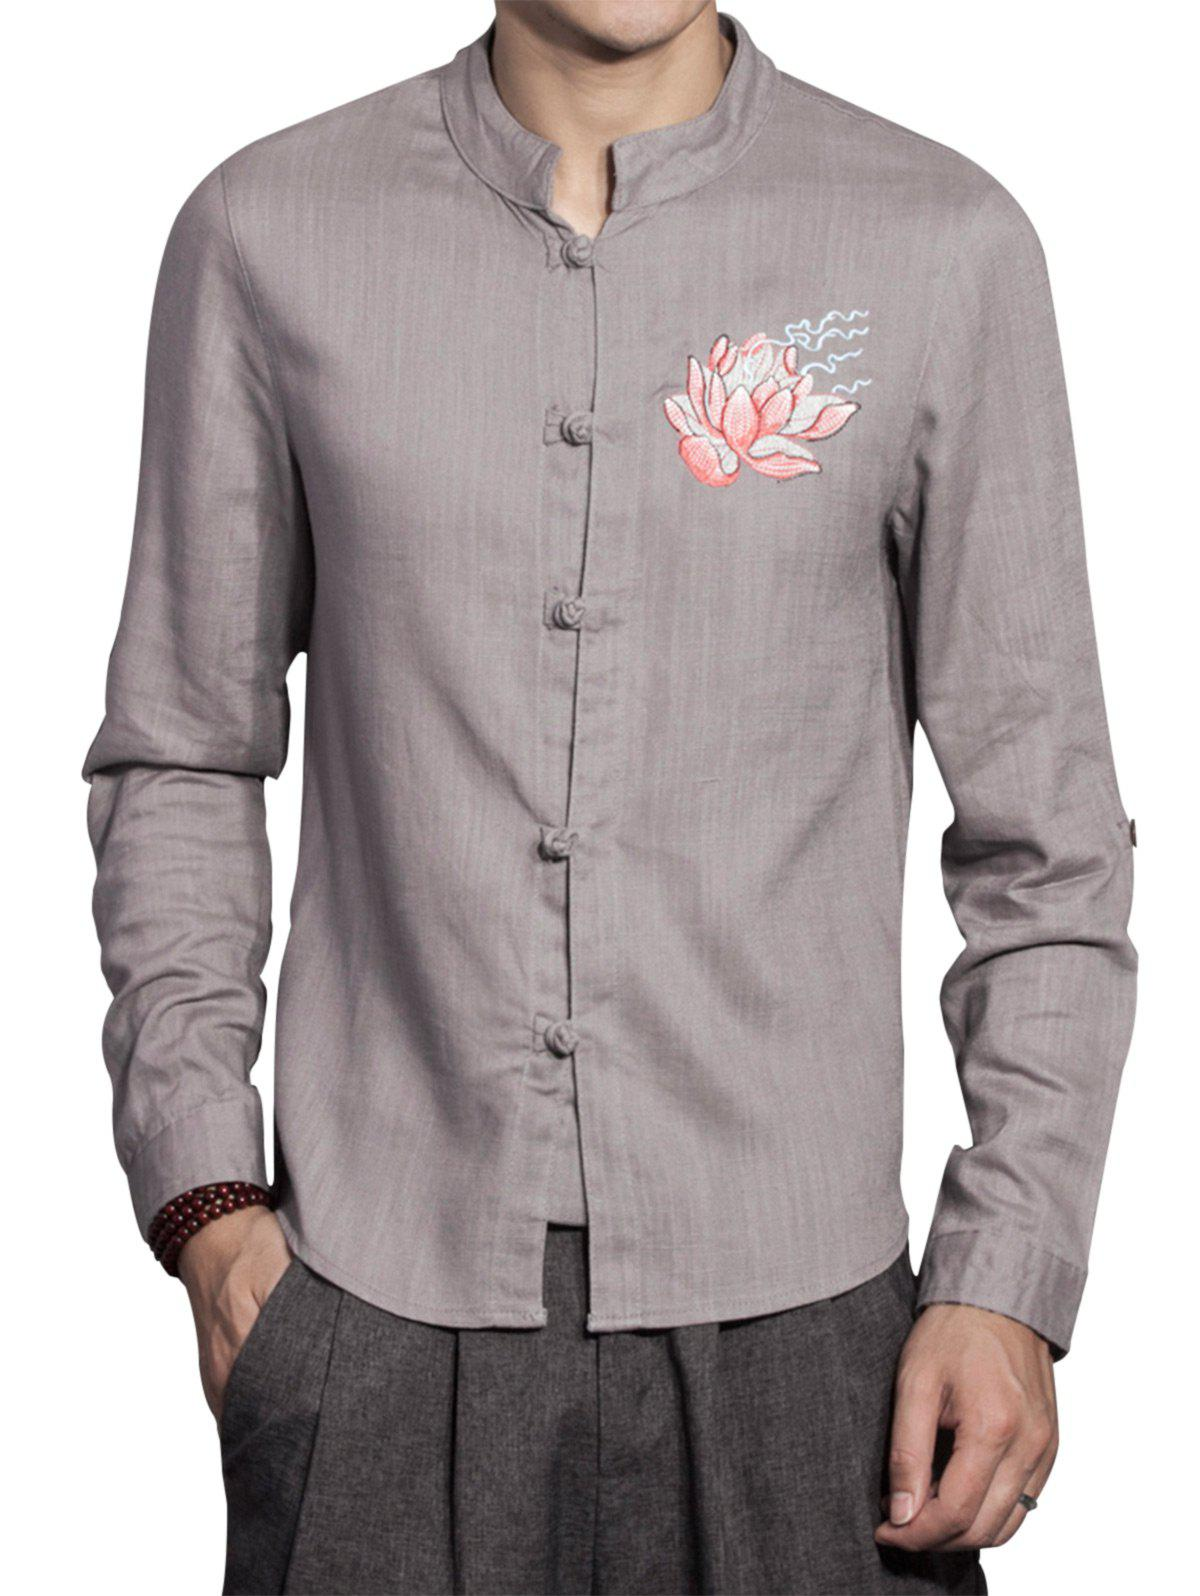 Cotton Linen Mandarin Collar Floral Embroidered Shirt - GRAY L